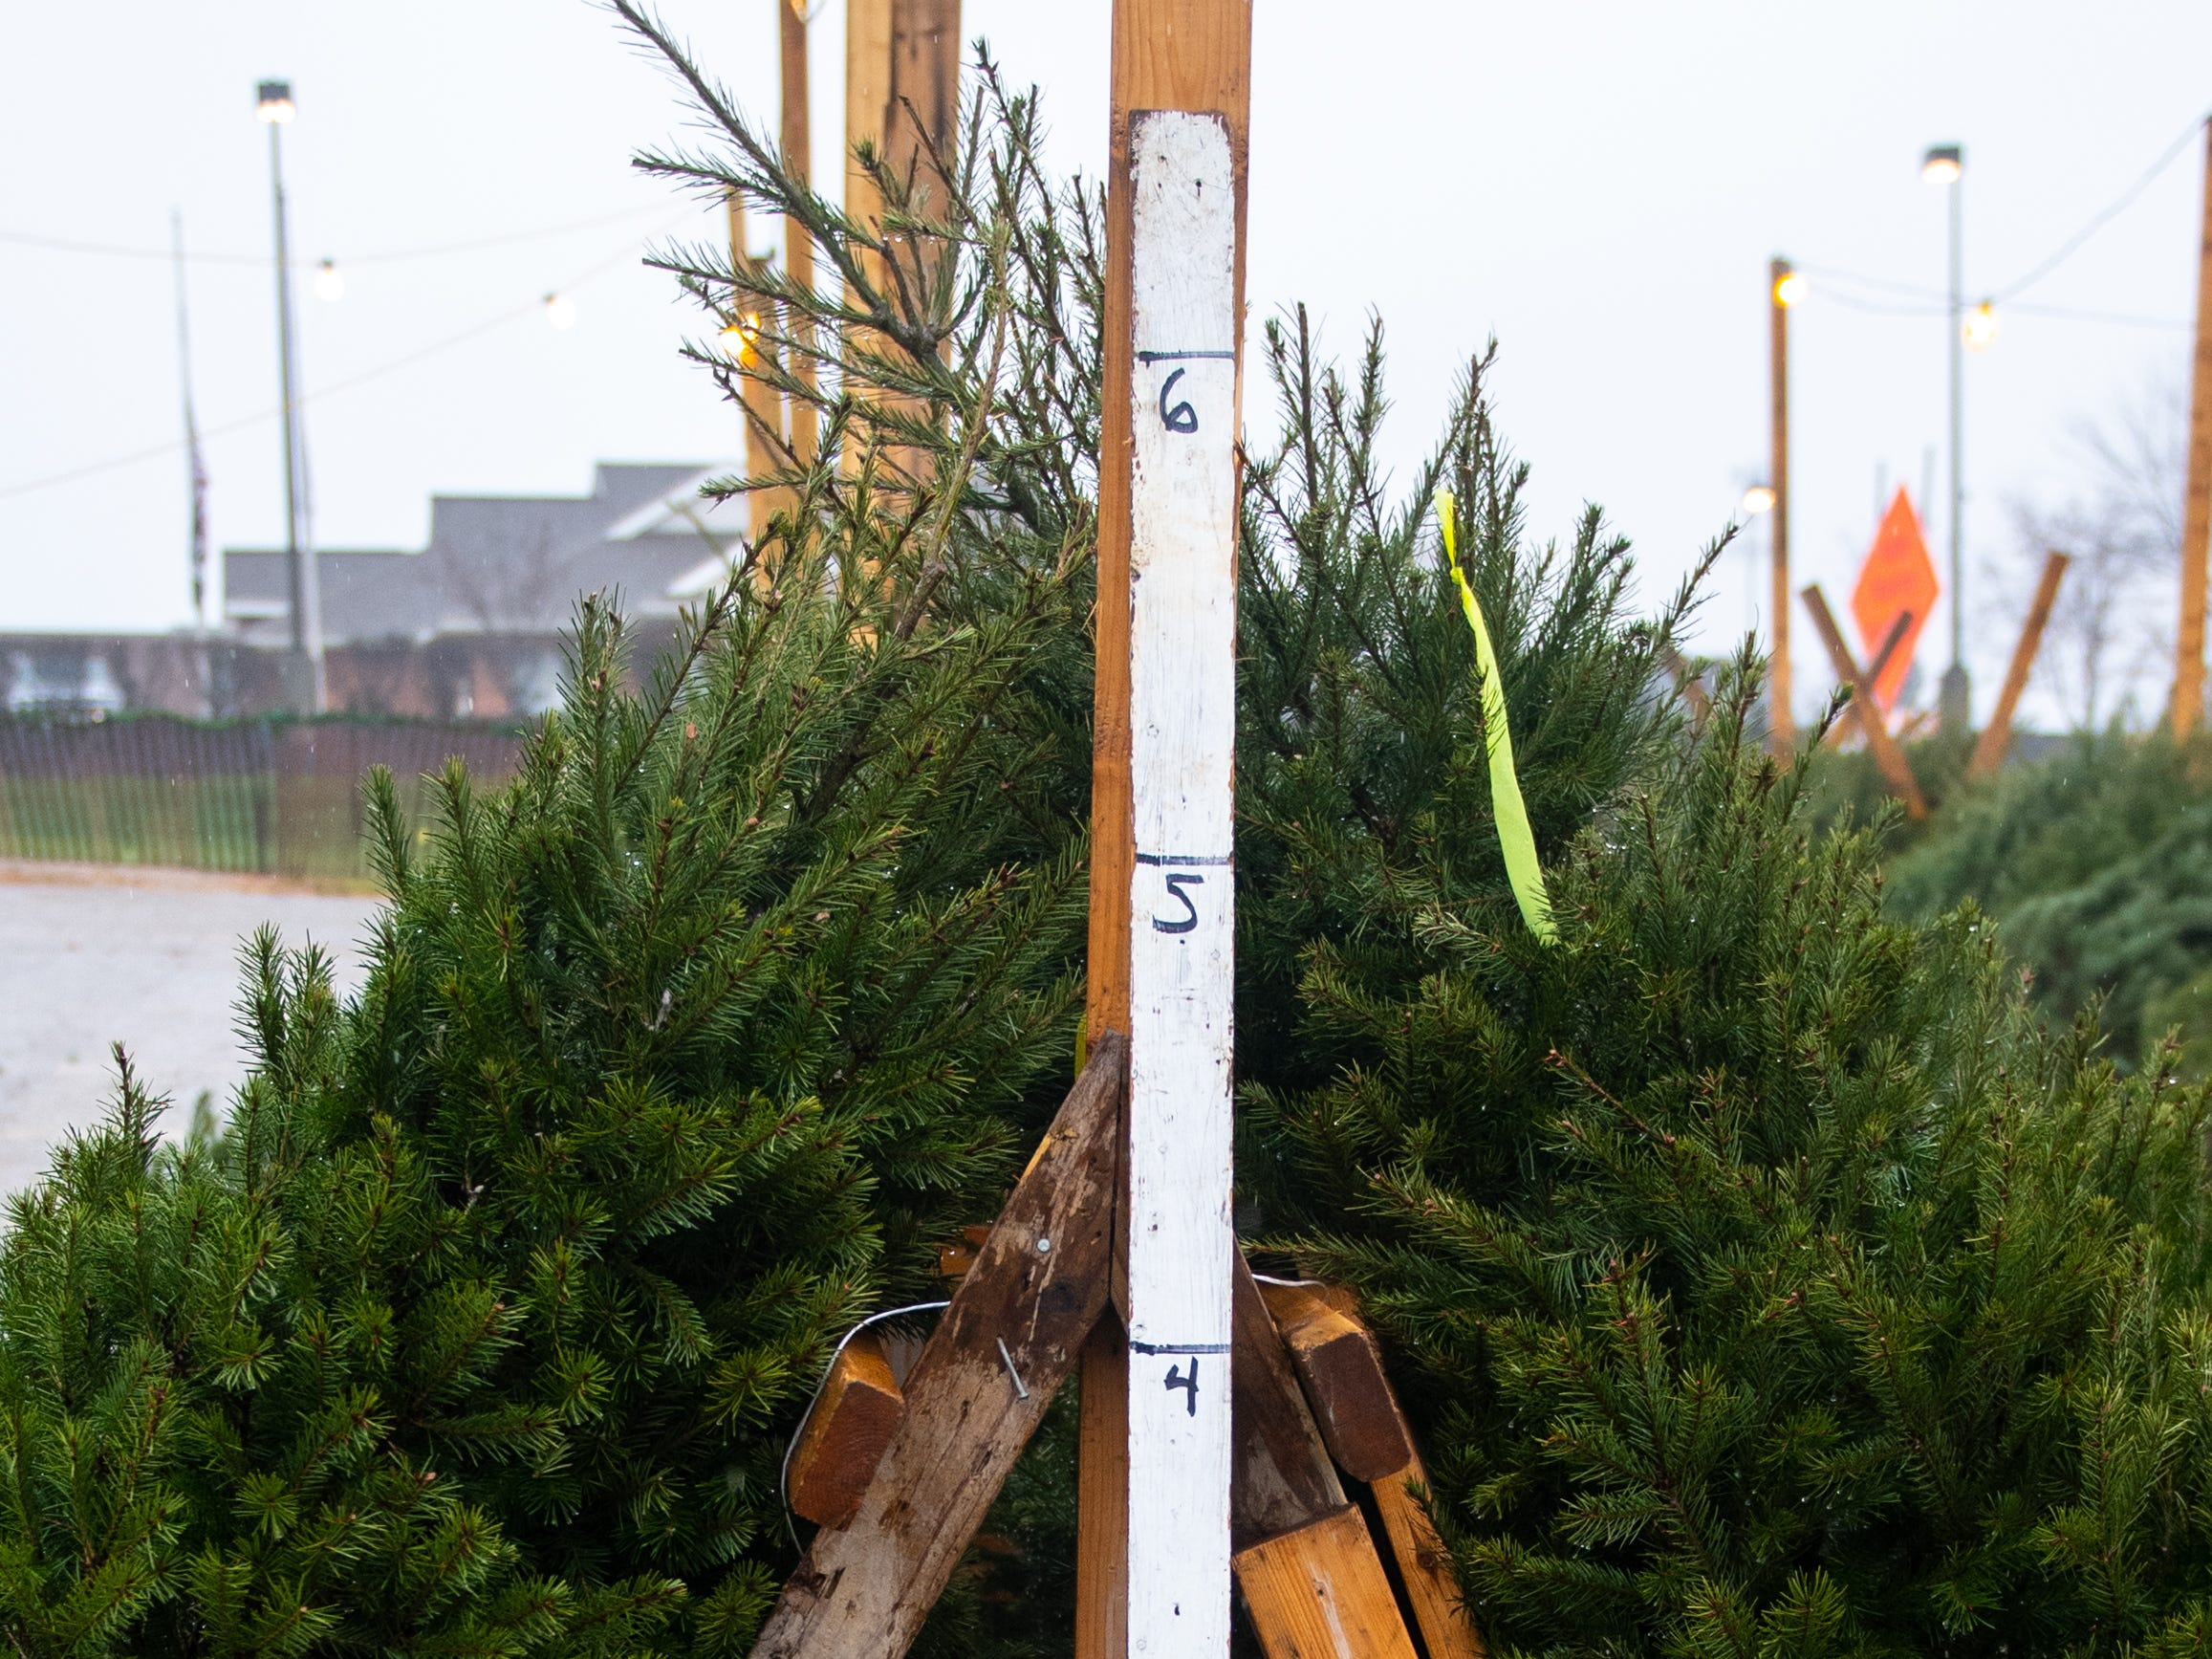 The annual Christmas Tree Sale is not limited to Ollie's Bargain Outlet parking lot. There's another location in the parking lot of Weis Markets in Red Lion, December 15, 2018.